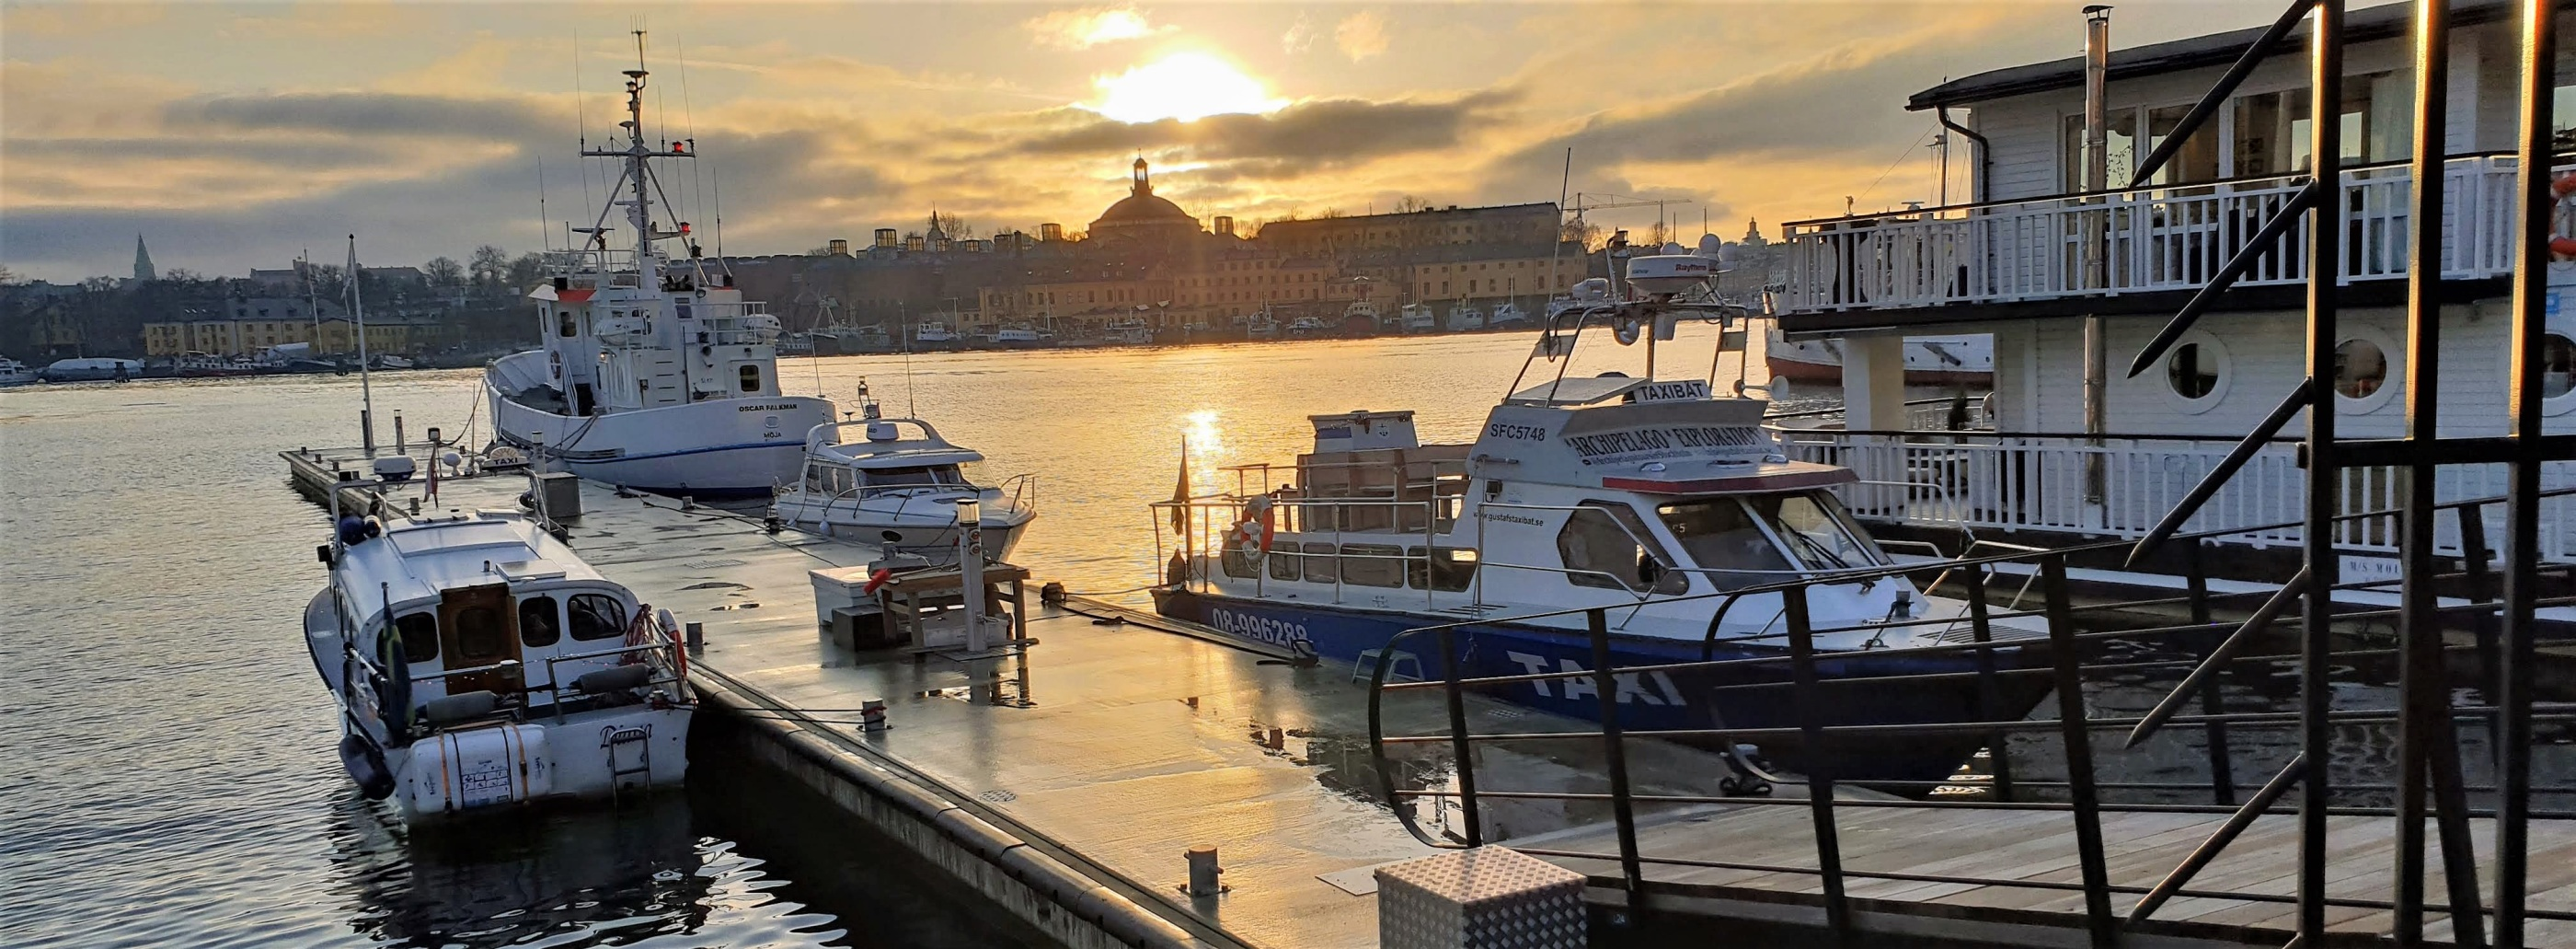 StockholmBoattours_WaterTaxi_Stockholm (3)